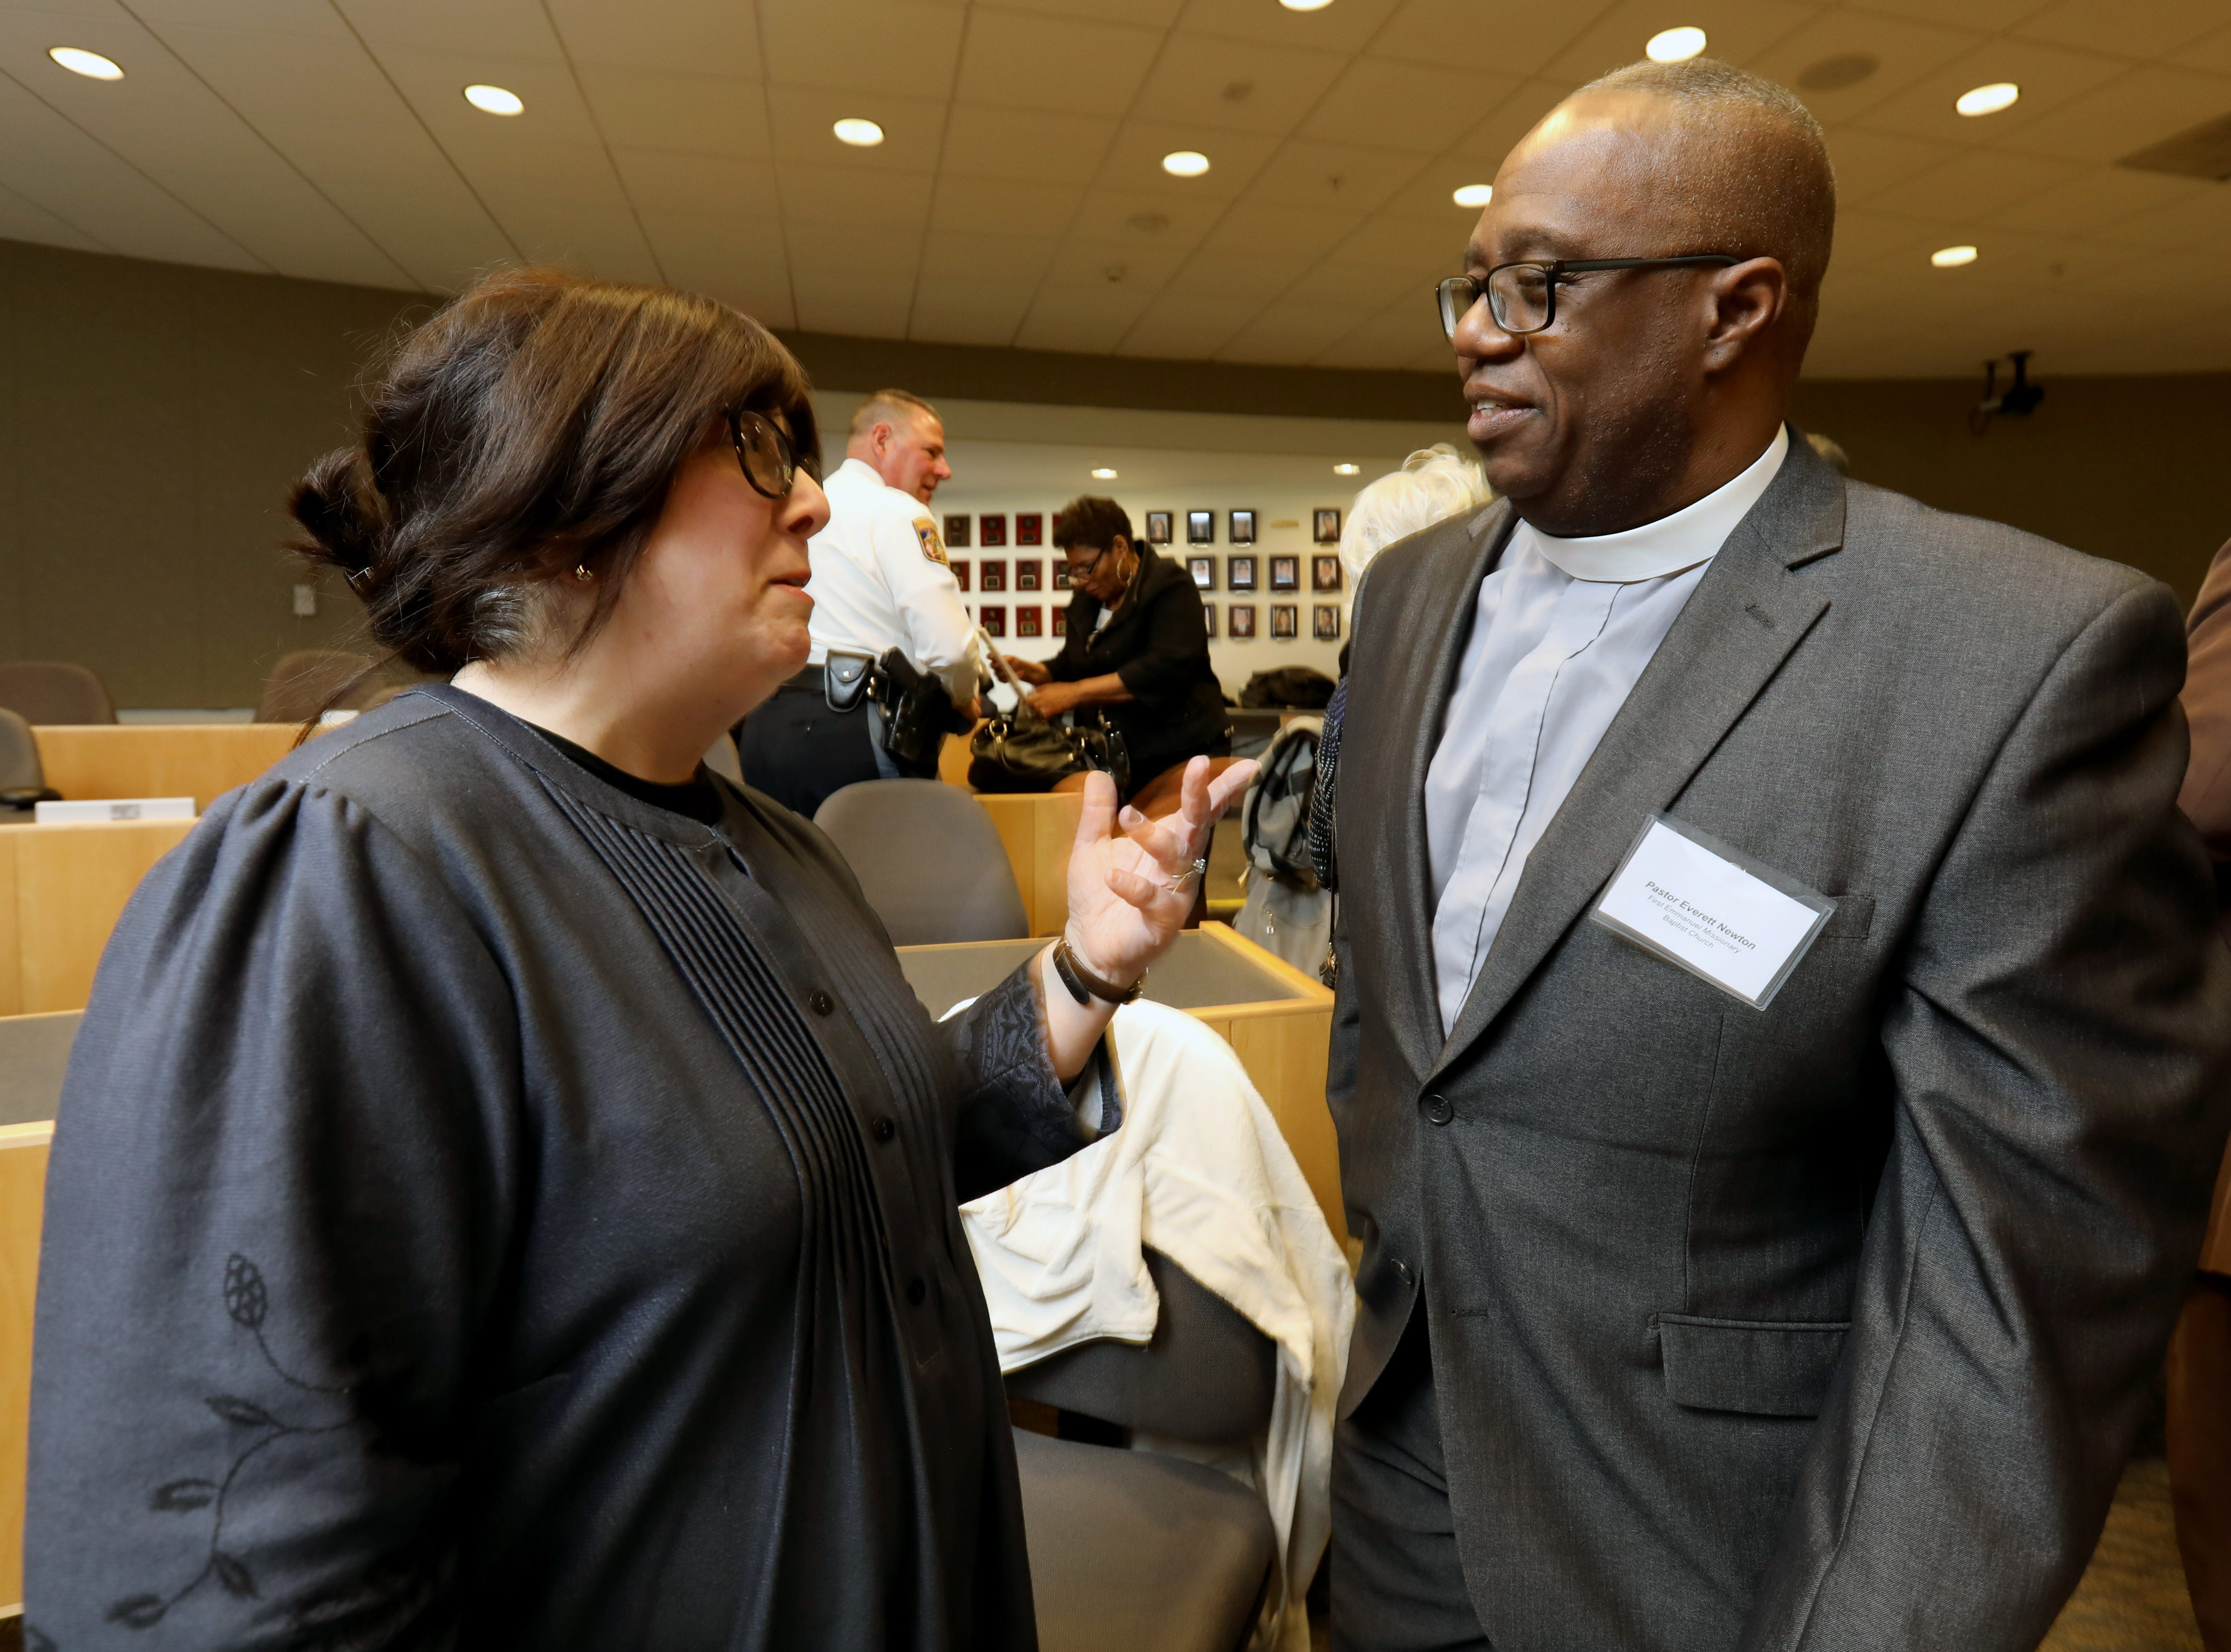 Shani Bechhofer of Monsey talks with Pastor Everett Newton after the Interfaith Symposium held at Rockland Community College March 20, 2019.